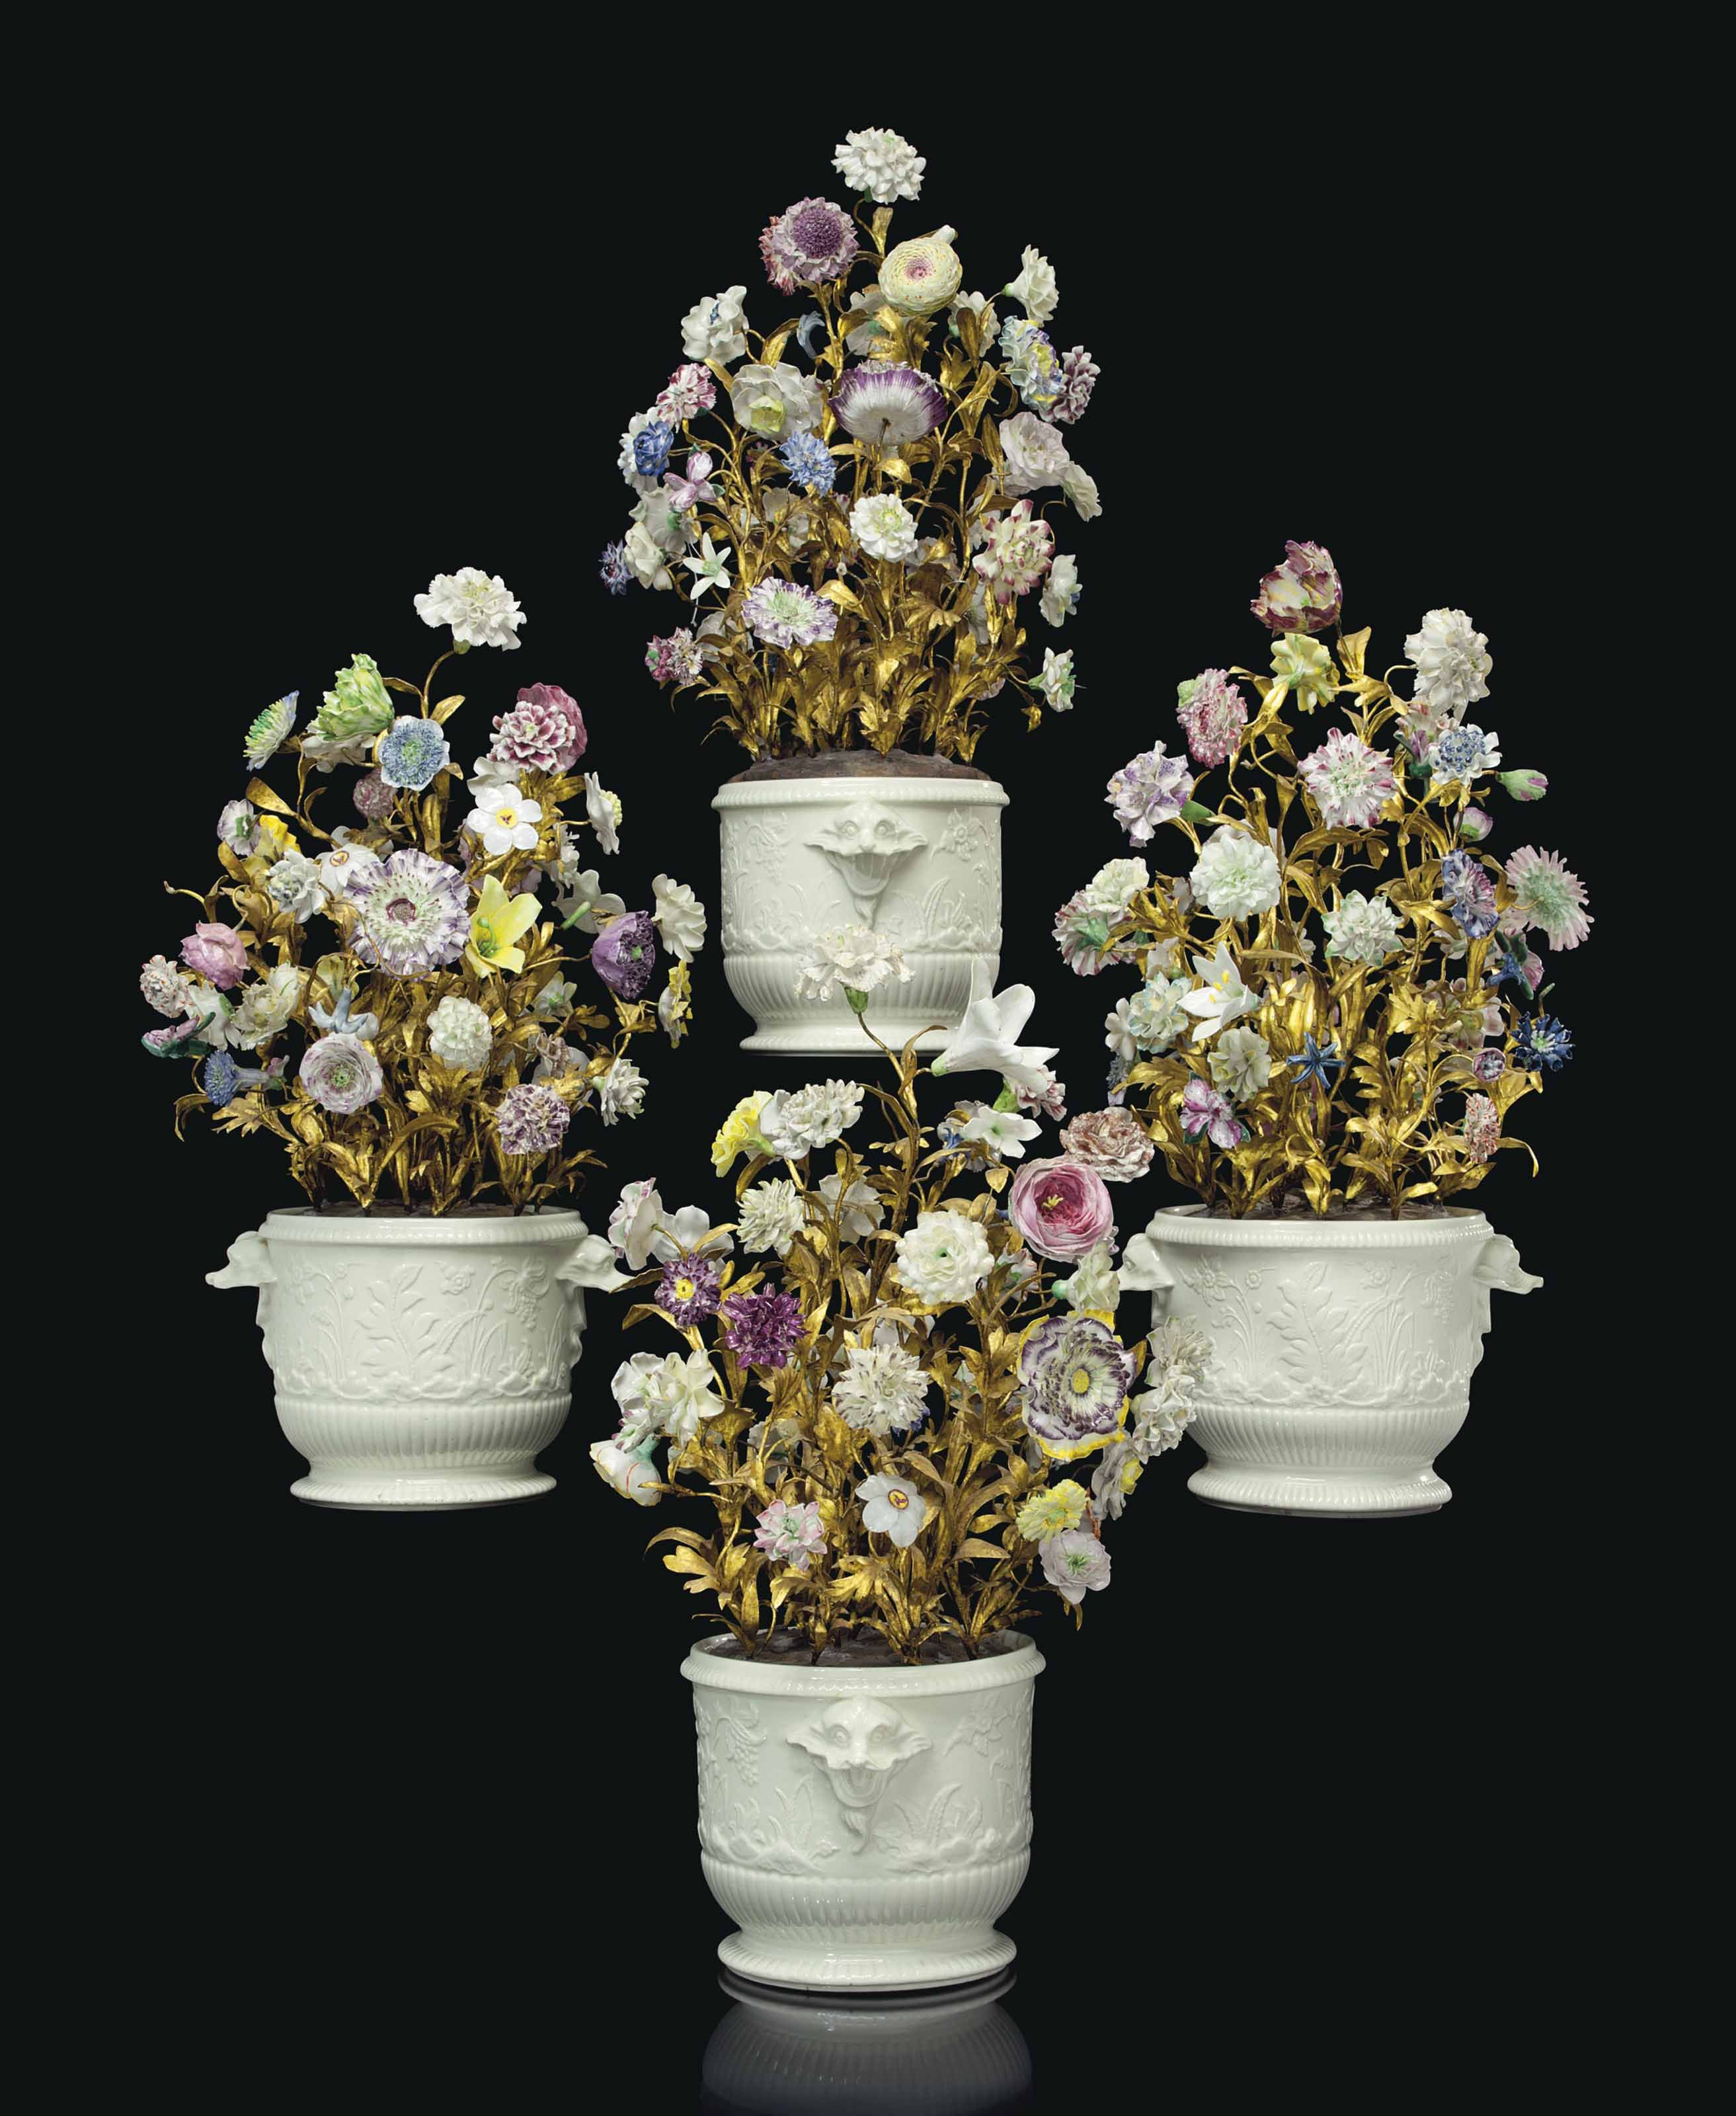 Four Saint Cloud Porcelain Bottle Coolers As Flower Pots The Coolers Circa 1740 The Flowers Mid 18th Century And Later Porcelain Flowers Flower Pots Porcelain